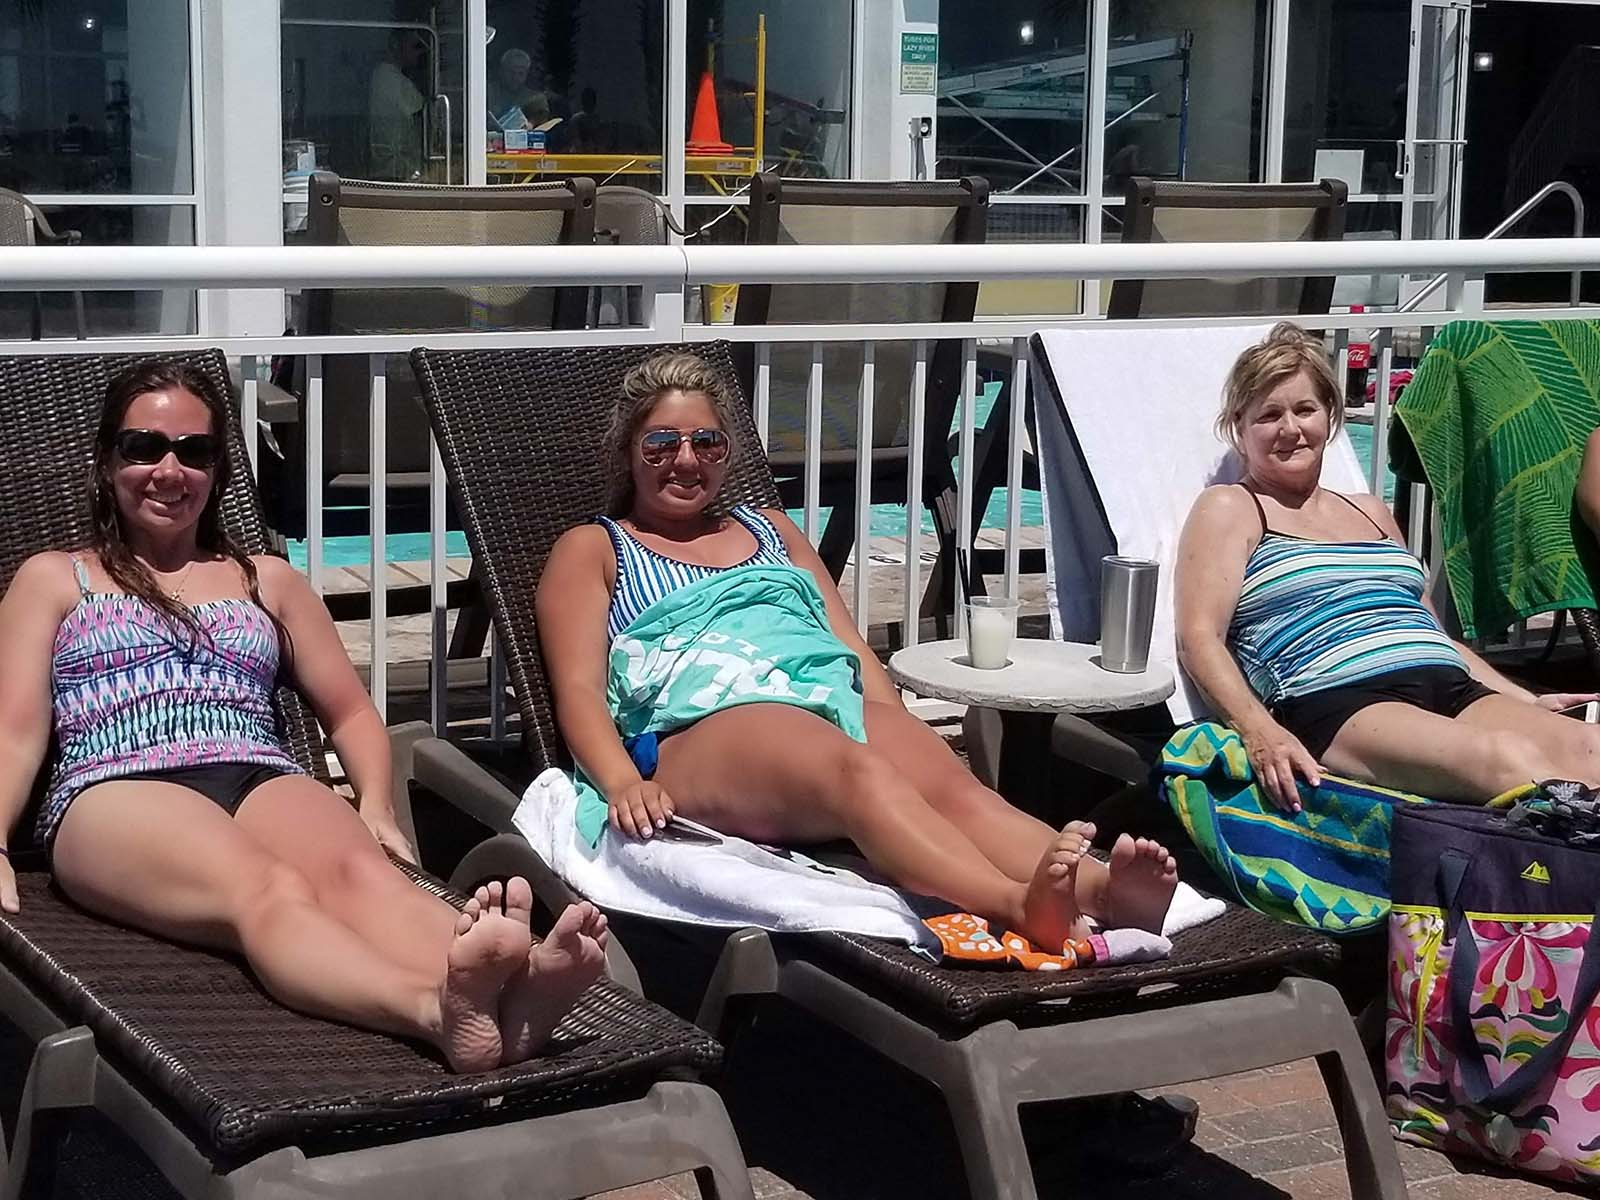 Three girls relaxing in chairs on pooldeck